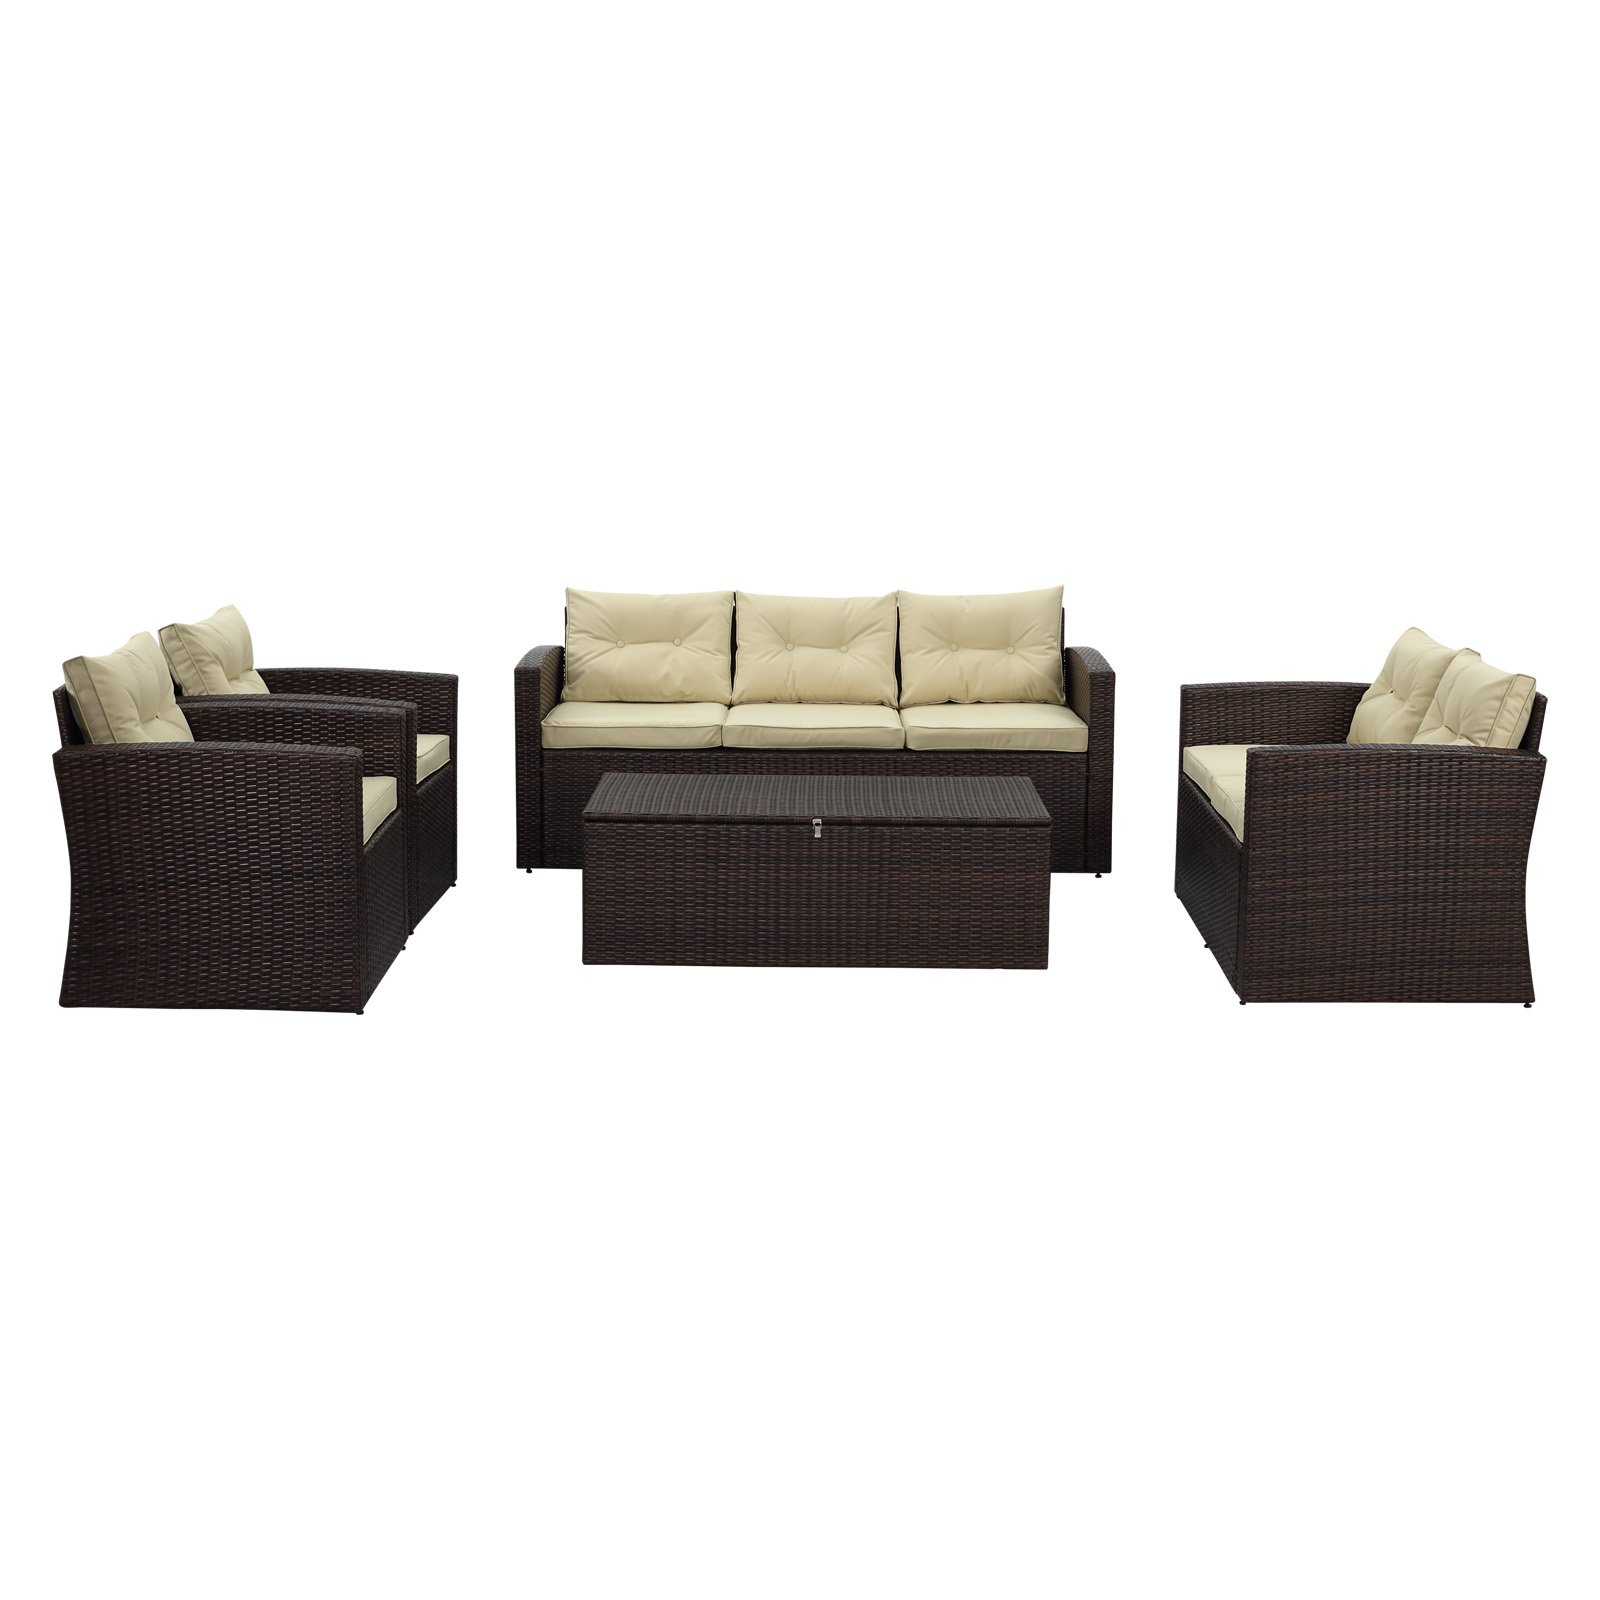 Thy-Hom Rio Wicker 7 Seat All-Weather 5 Piece Patio Conversation Set with Storage by The-Hom